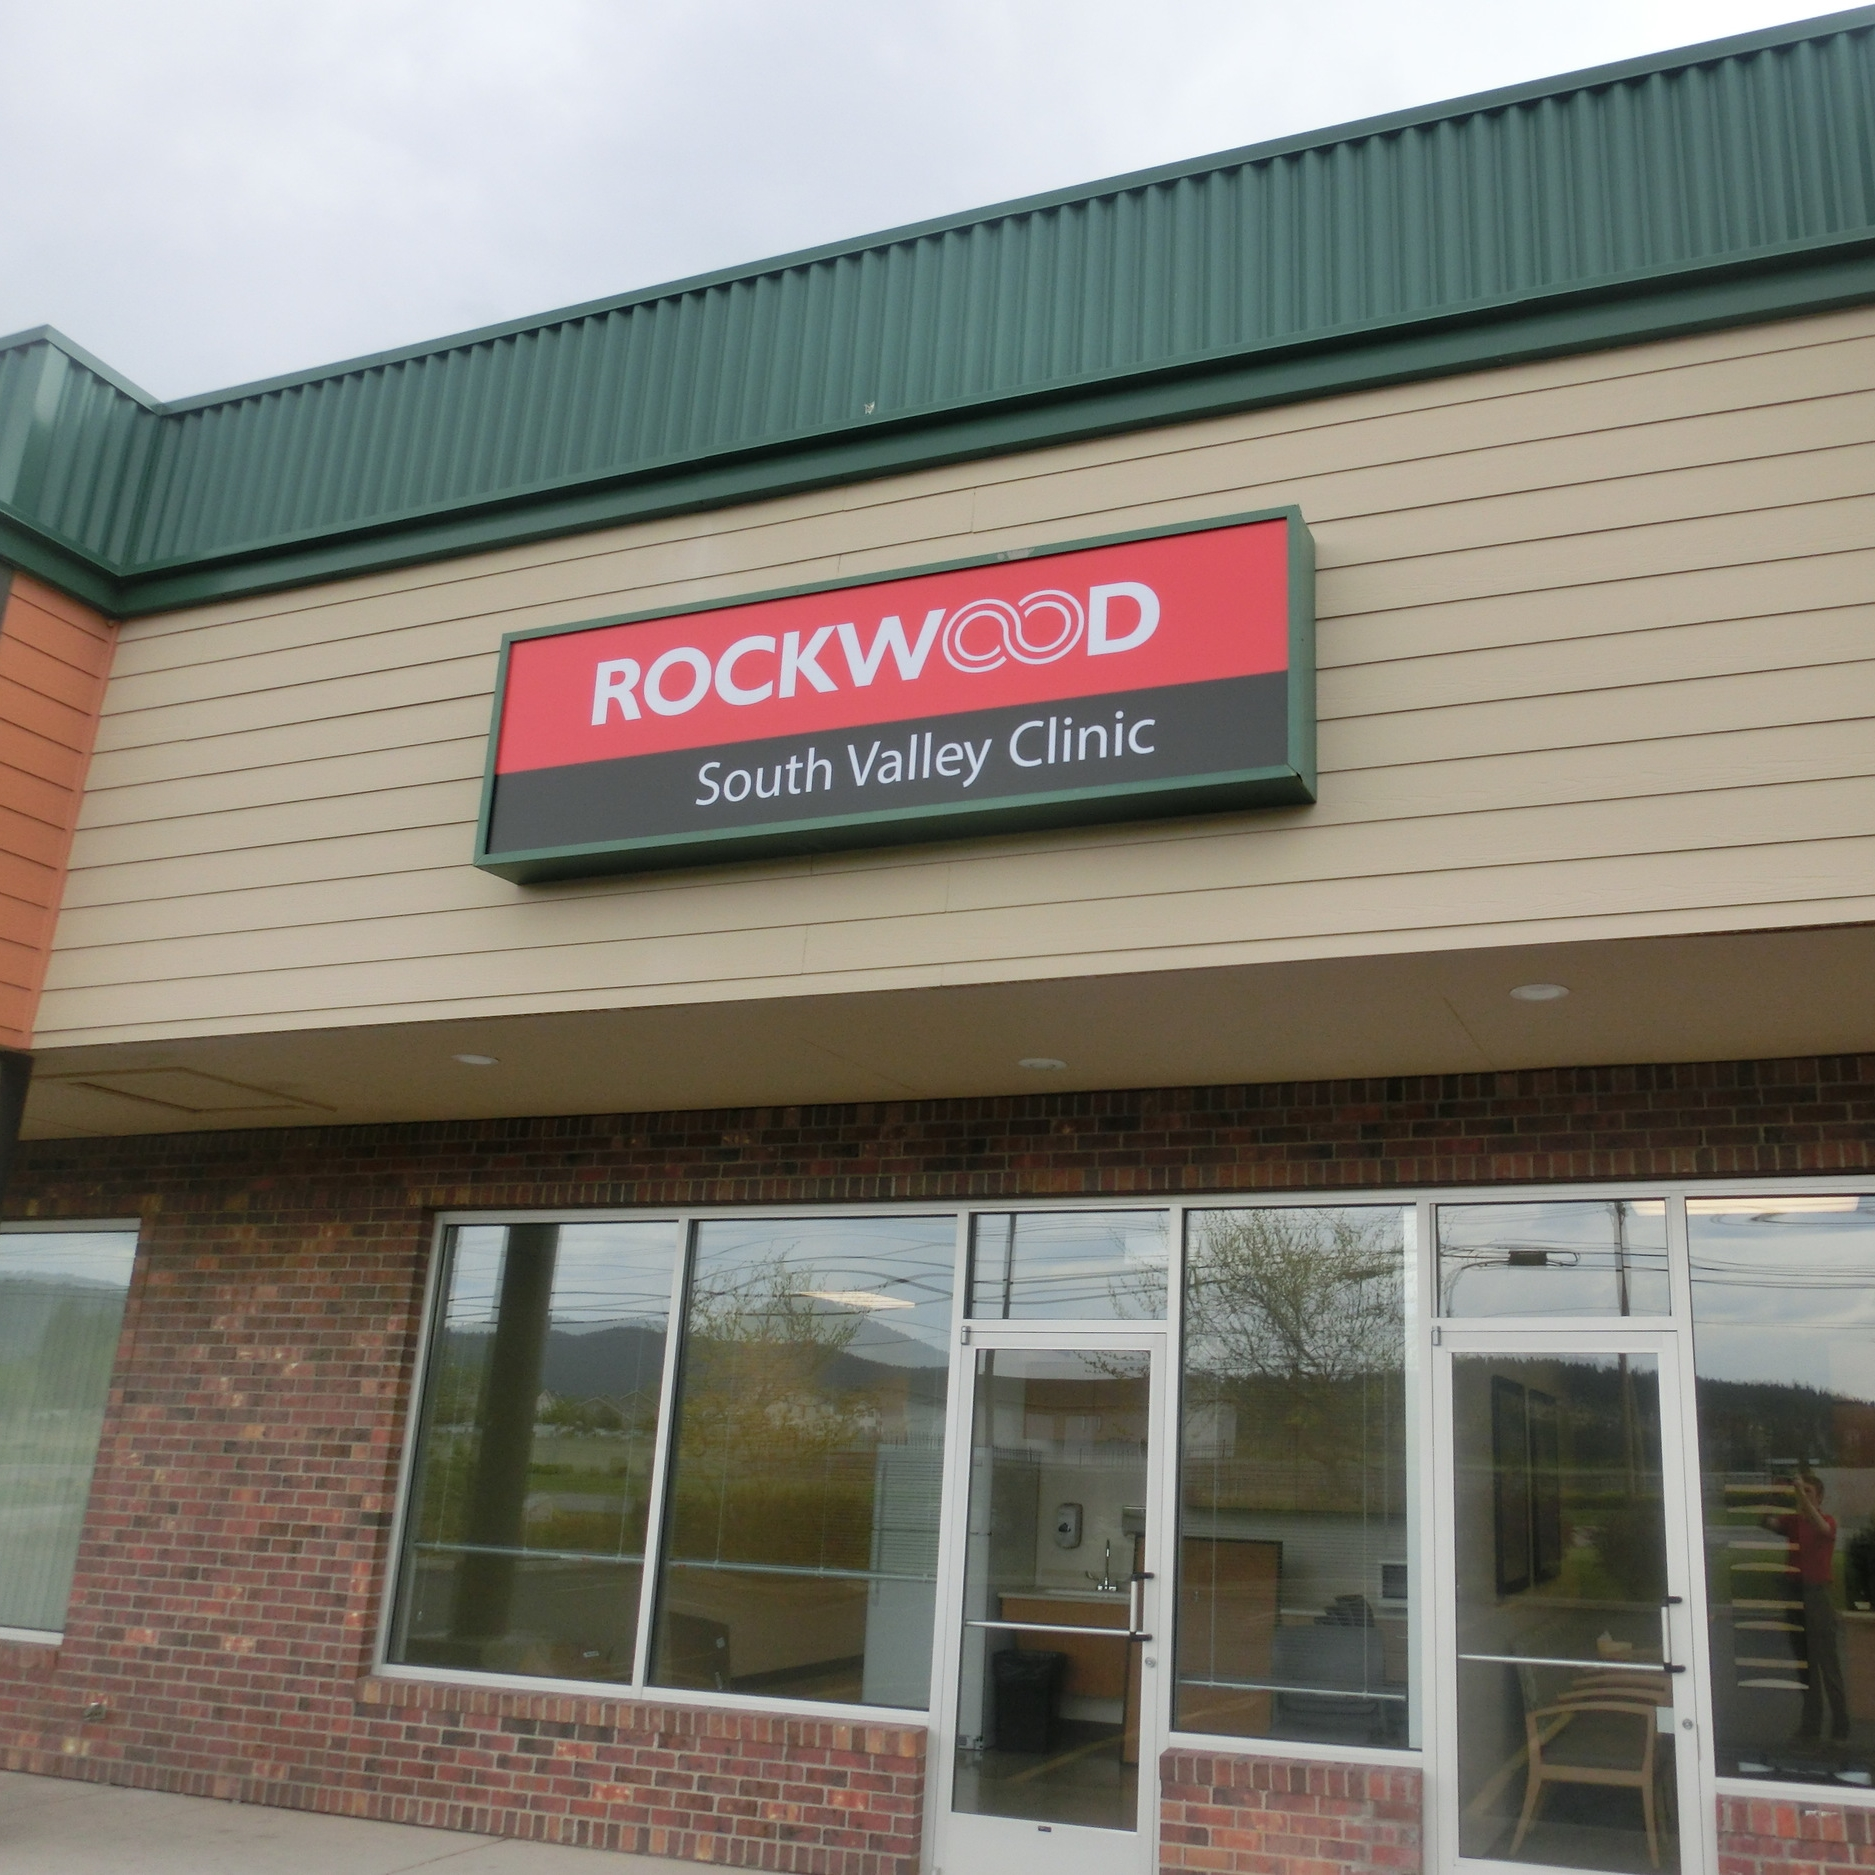 Rockwood South Valley Clinic